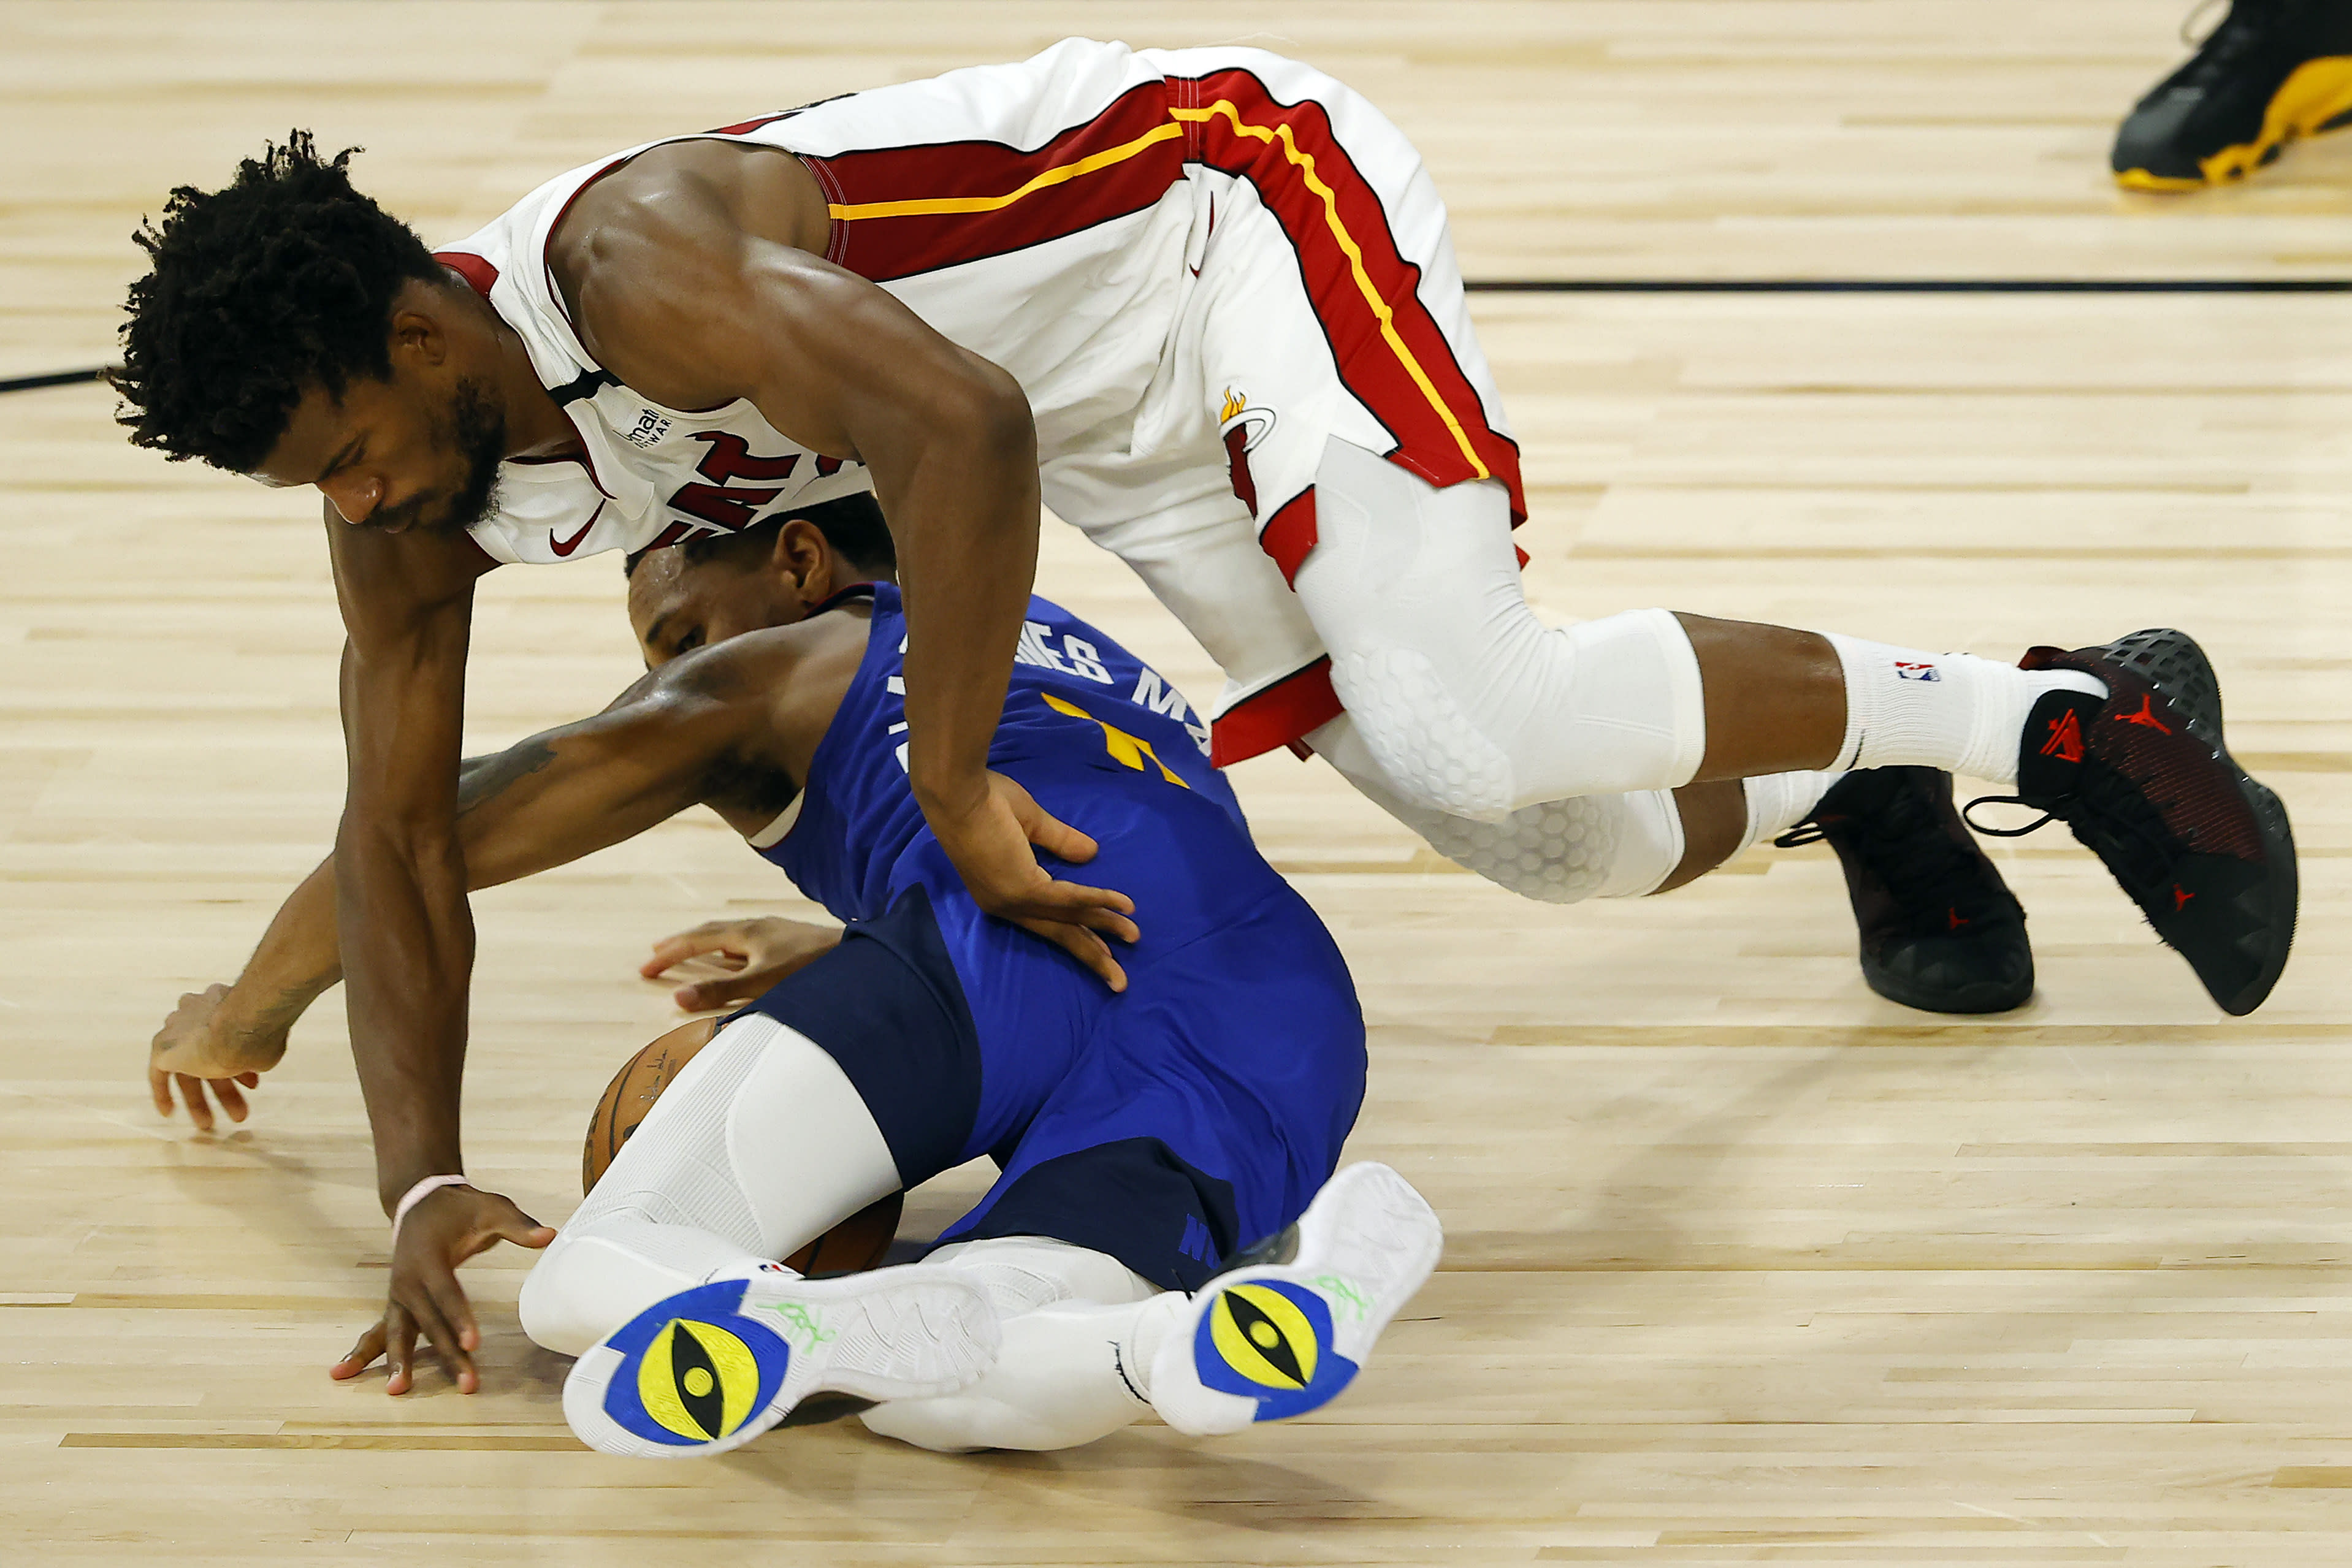 Denver Nuggets' Monte Morris, bottom, and Miami Heat's Jimmy Butler scramble for the ball during an NBA basketball game, Saturday, Aug. 1, 2020, in Lake Buena Vista, Fla. (Kevin C. Cox/Pool Photo via AP)